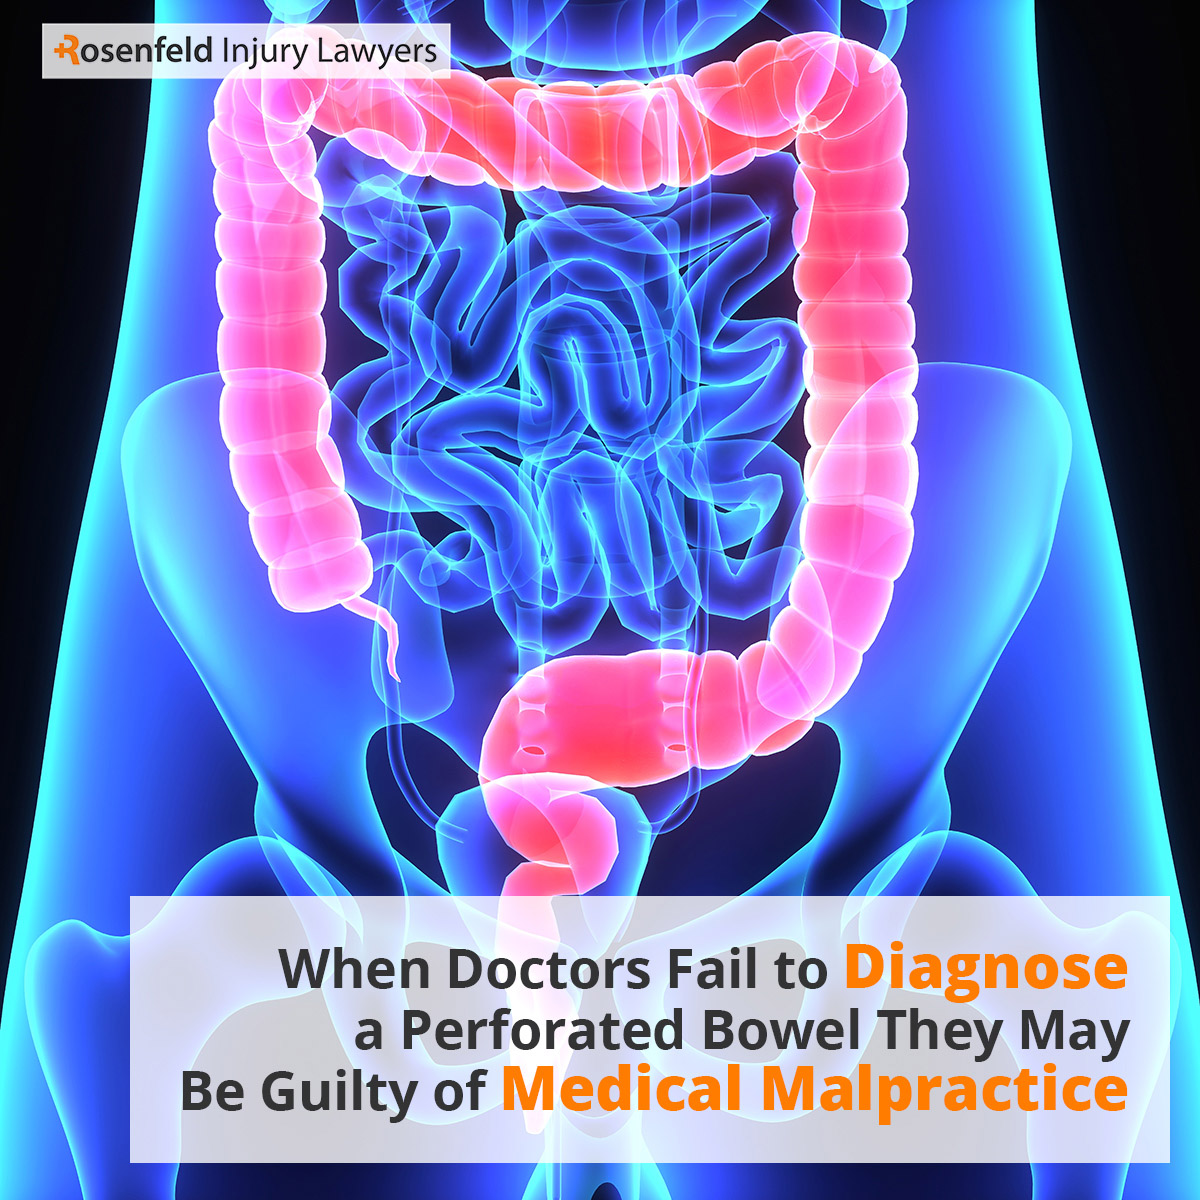 Chicago Medical Malpractice claims lawyer